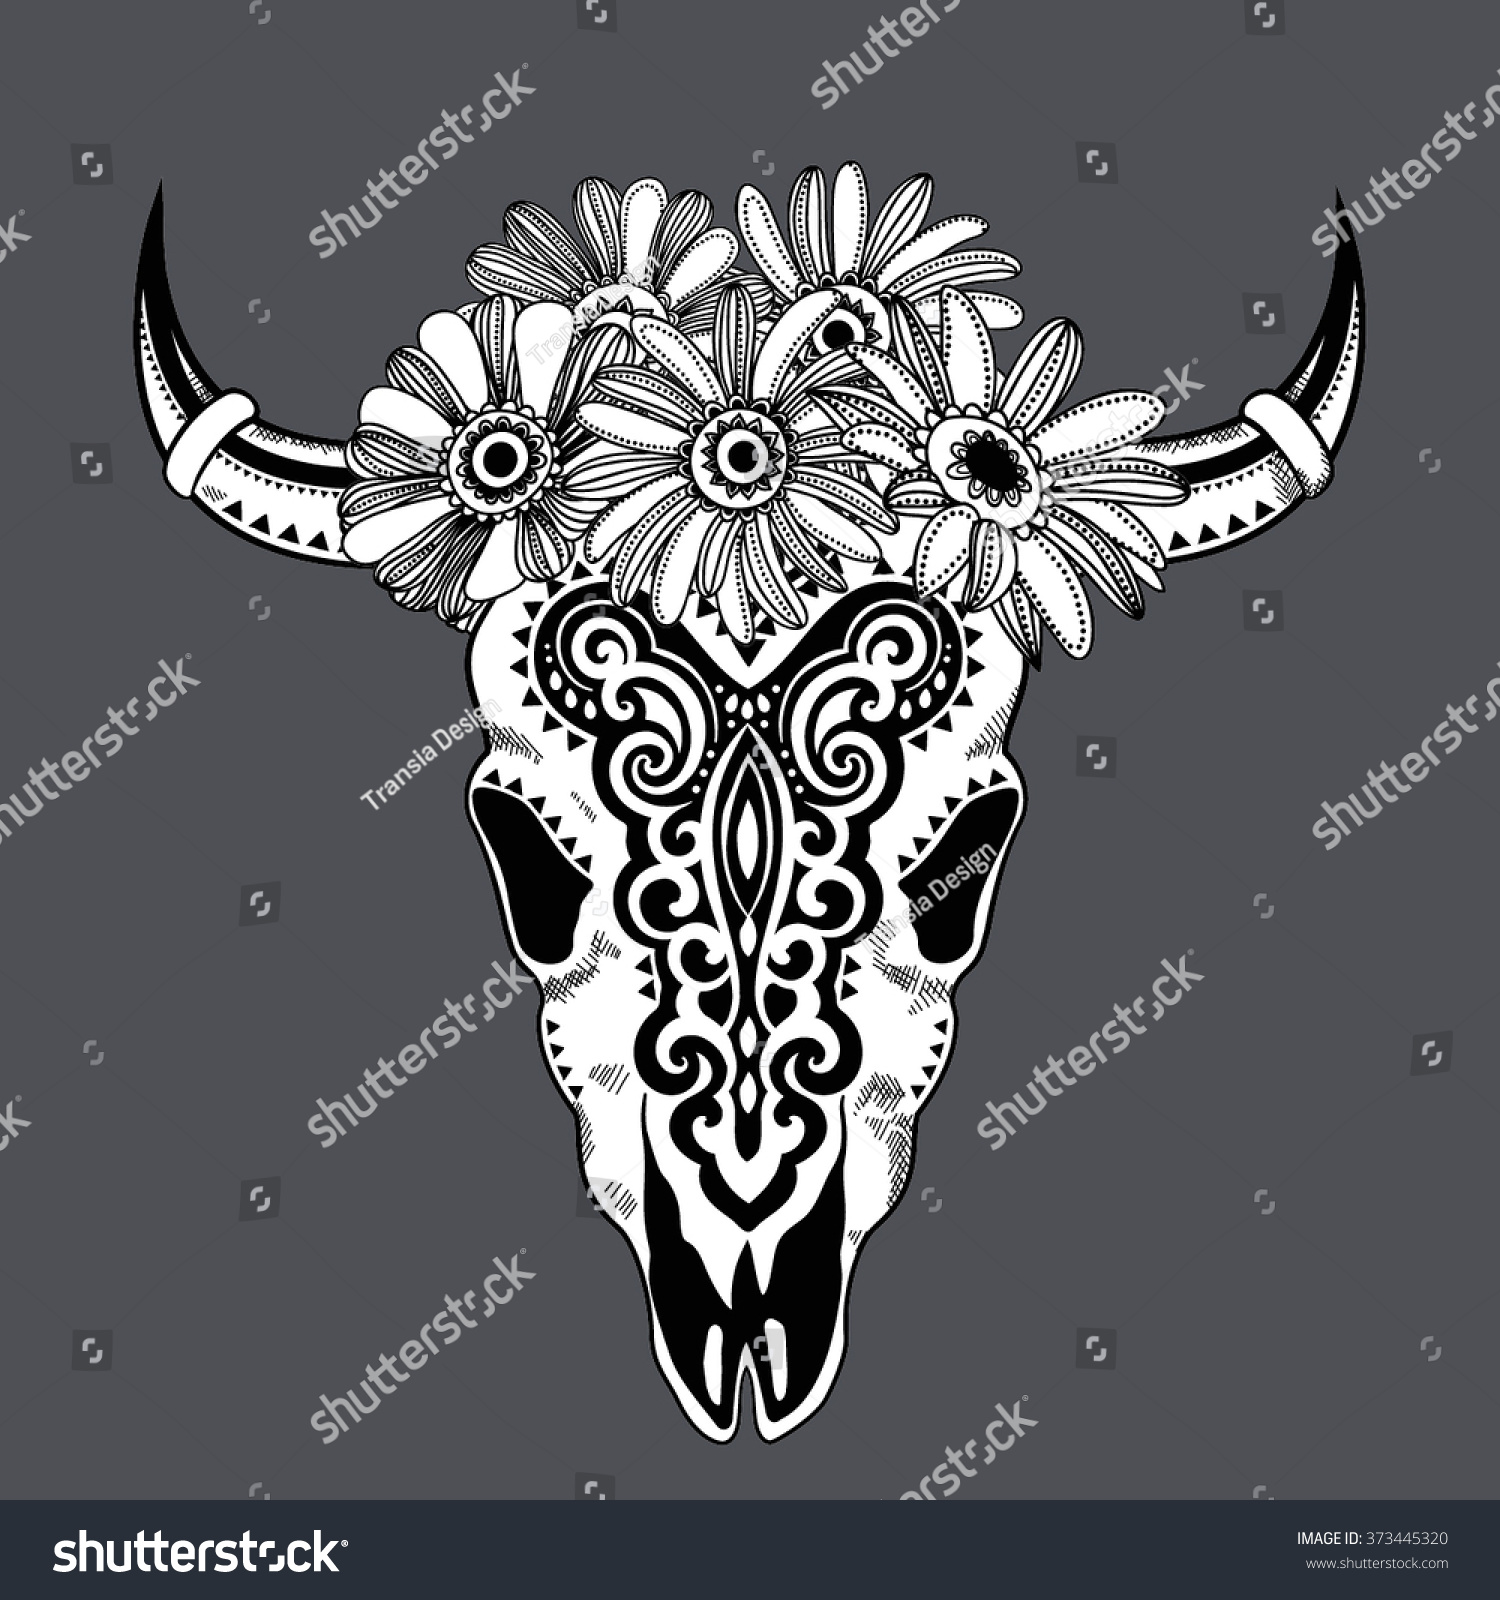 Animal tribal art